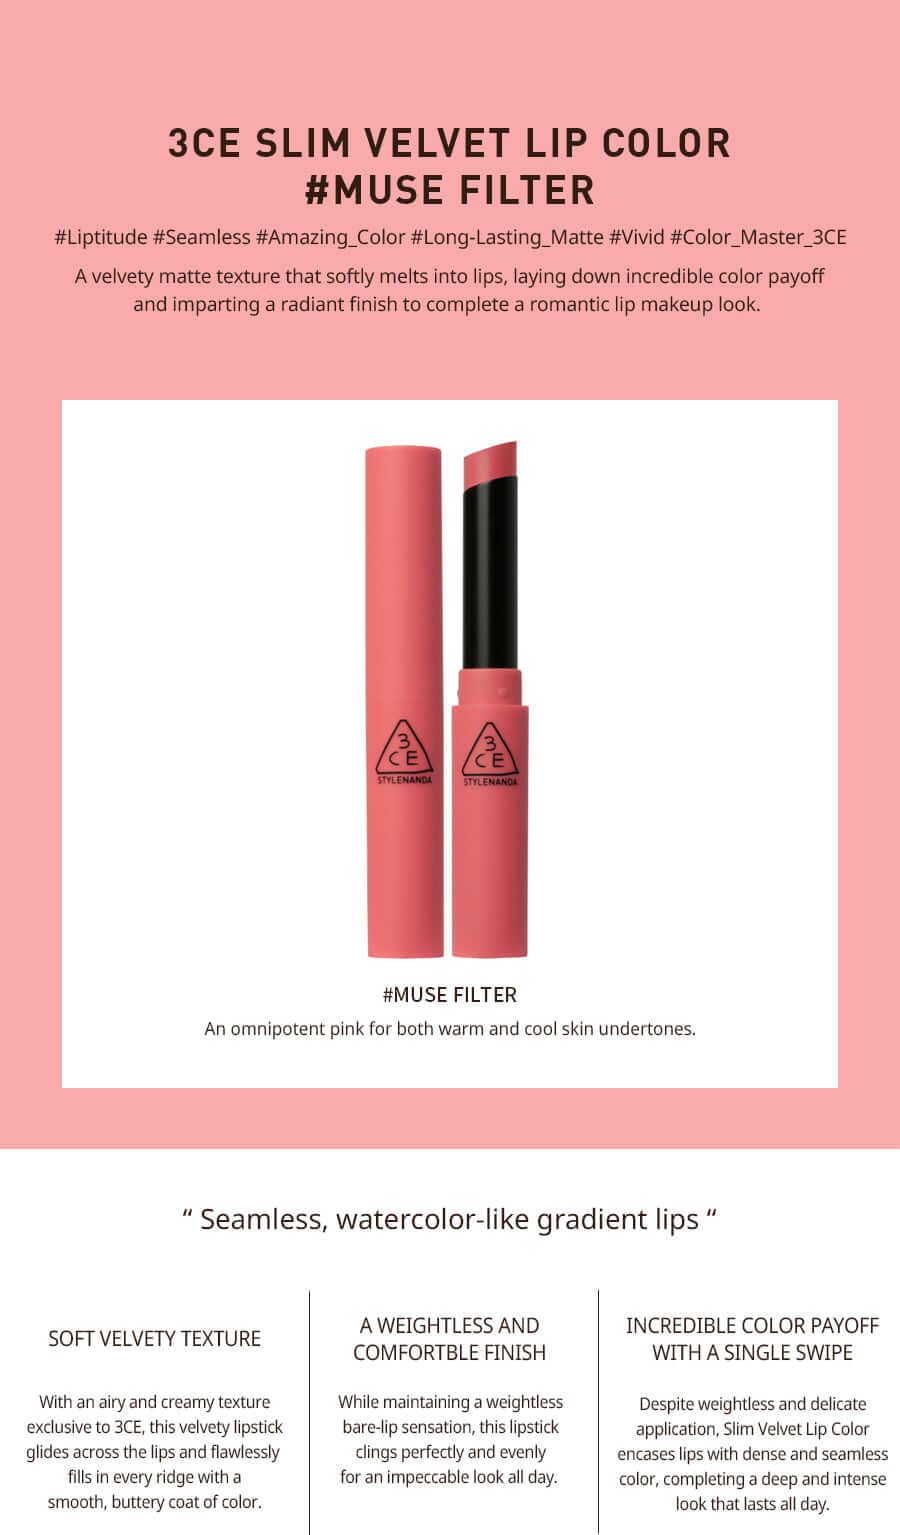 Son Thỏi 3CE Slim Velvet Lip Color #Muse Filter